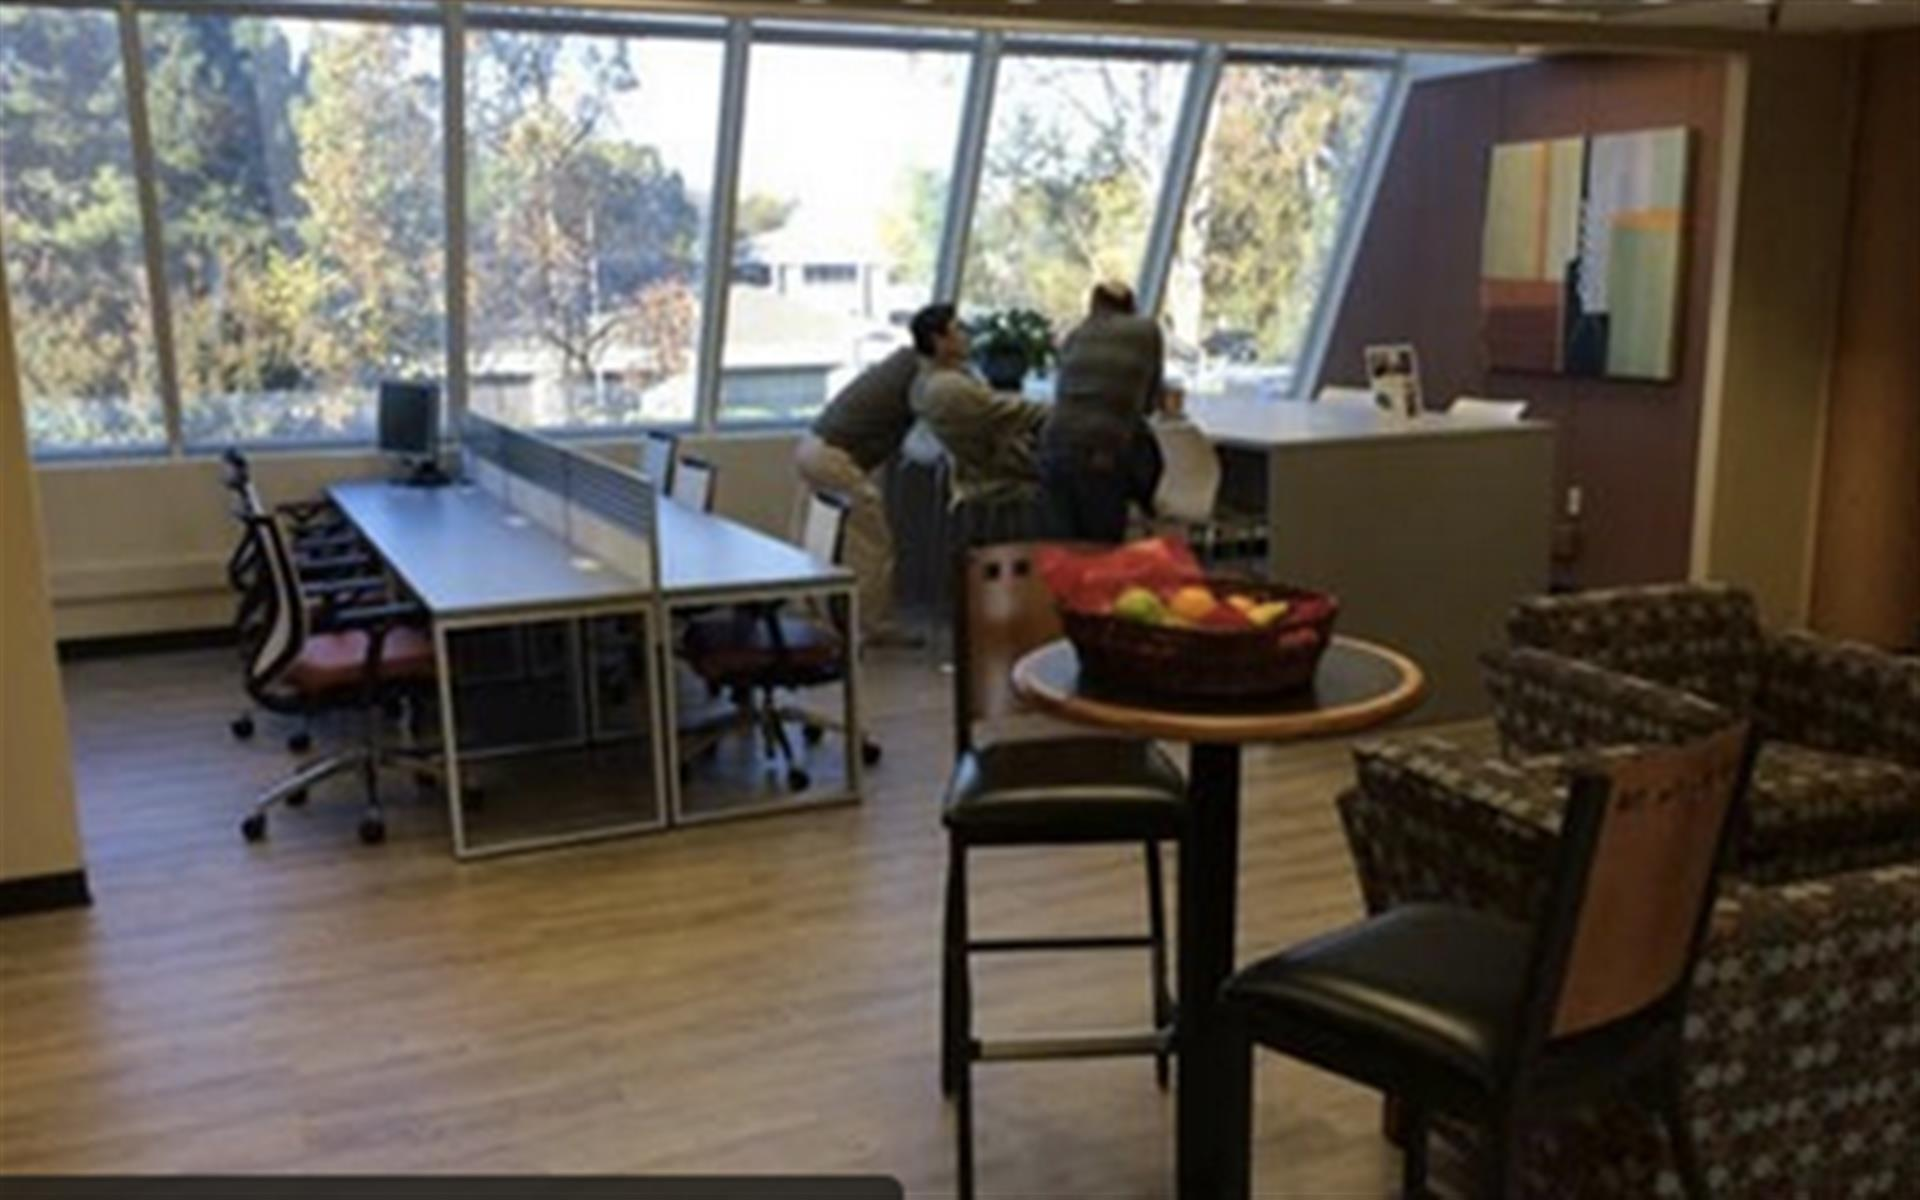 Pacific Workplaces - Sunnyvale - Monthly Coworking Membership